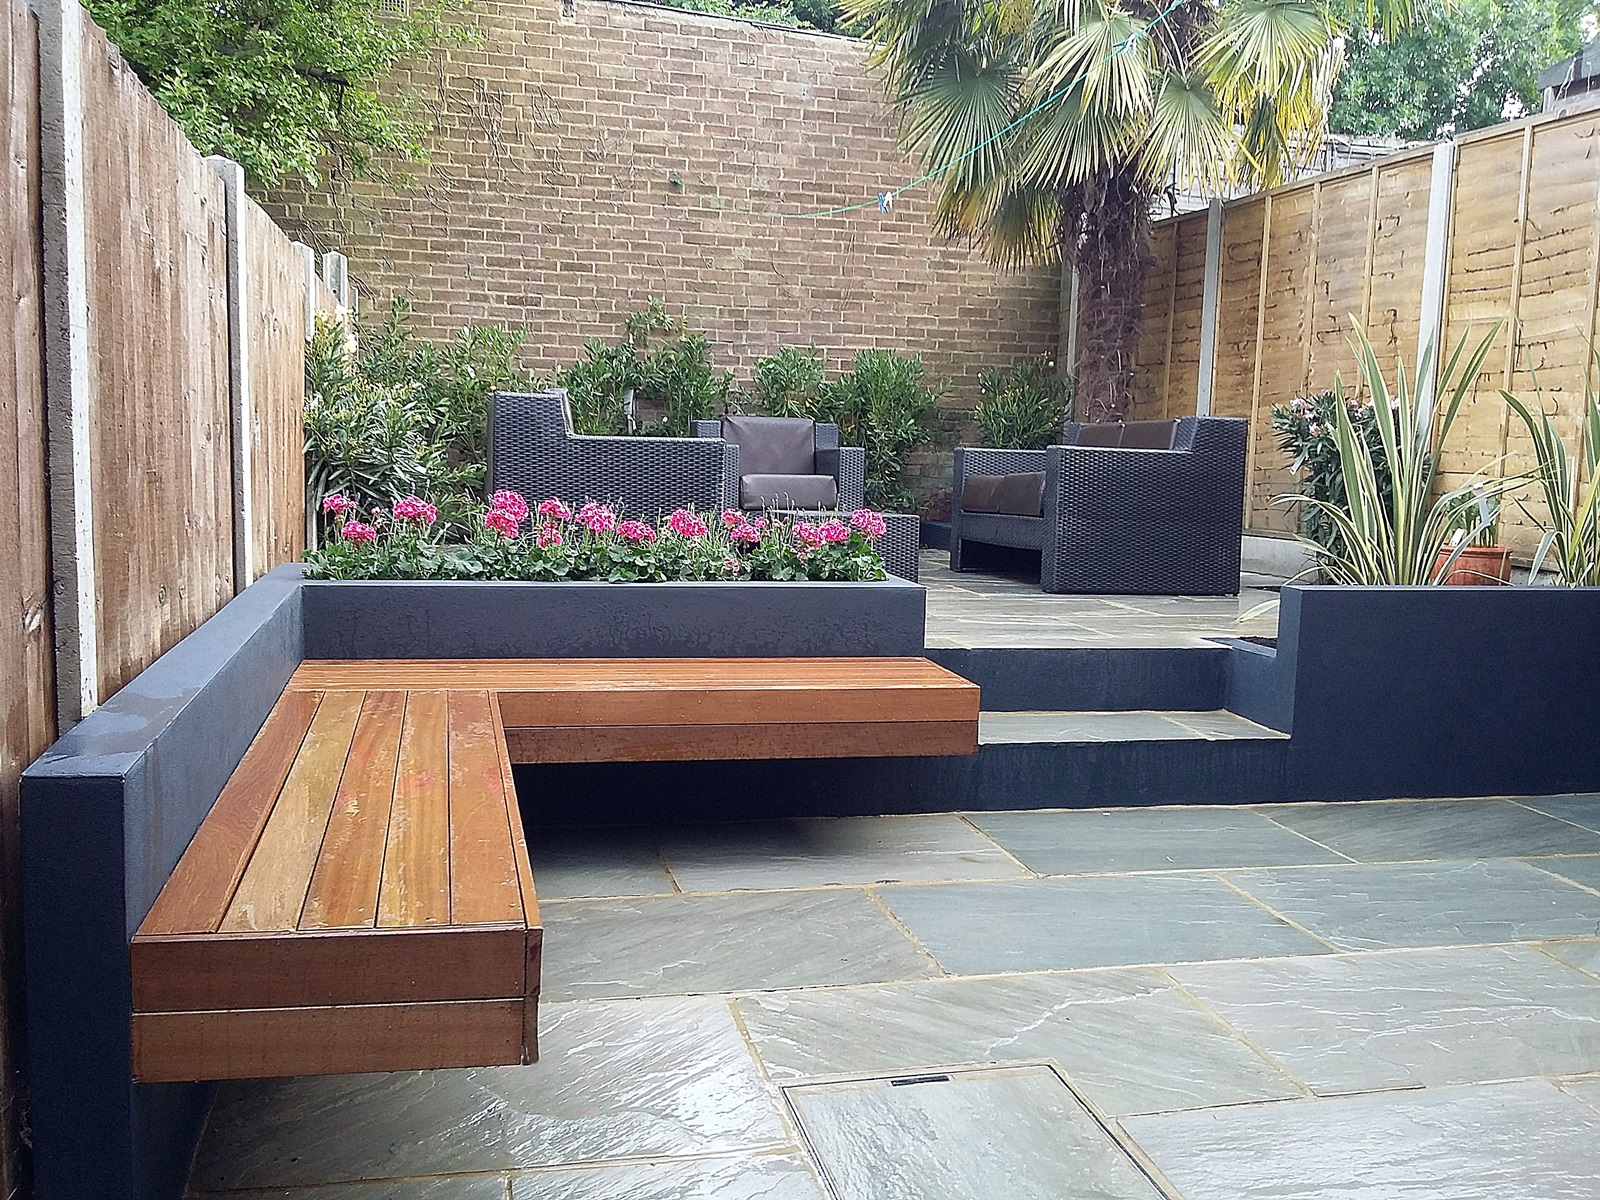 Modern garden design london natural sandstone paving patio for Patio designs for small gardens